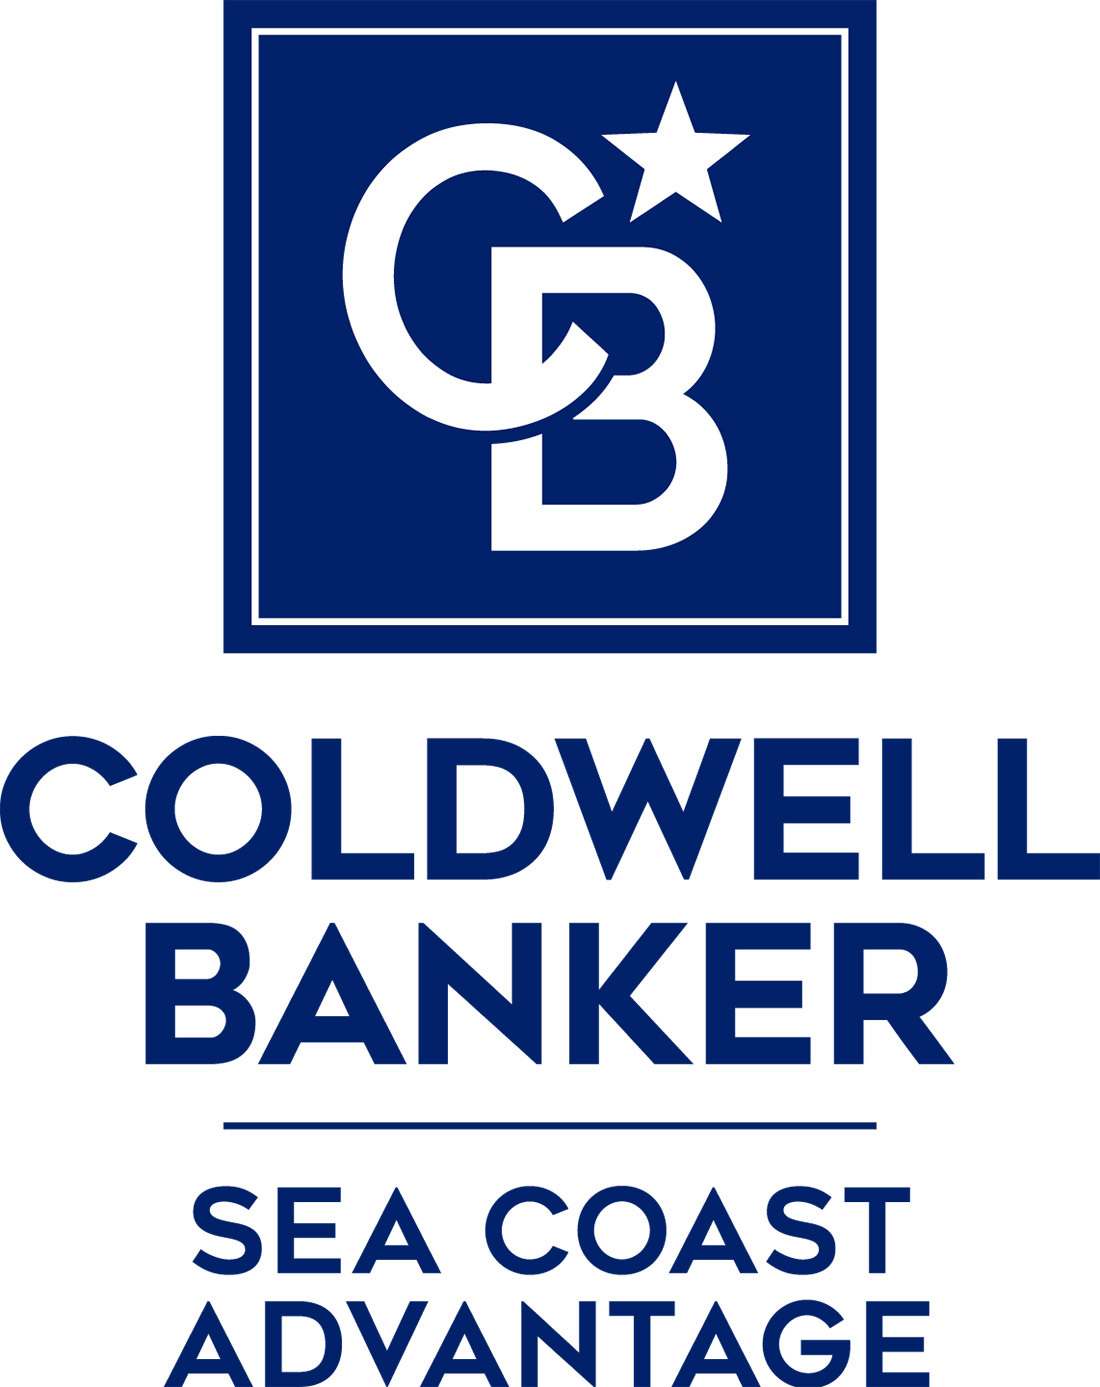 Jimmie Pendergrass - Coldwell Banker Sea Coast Advantage Realty Logo